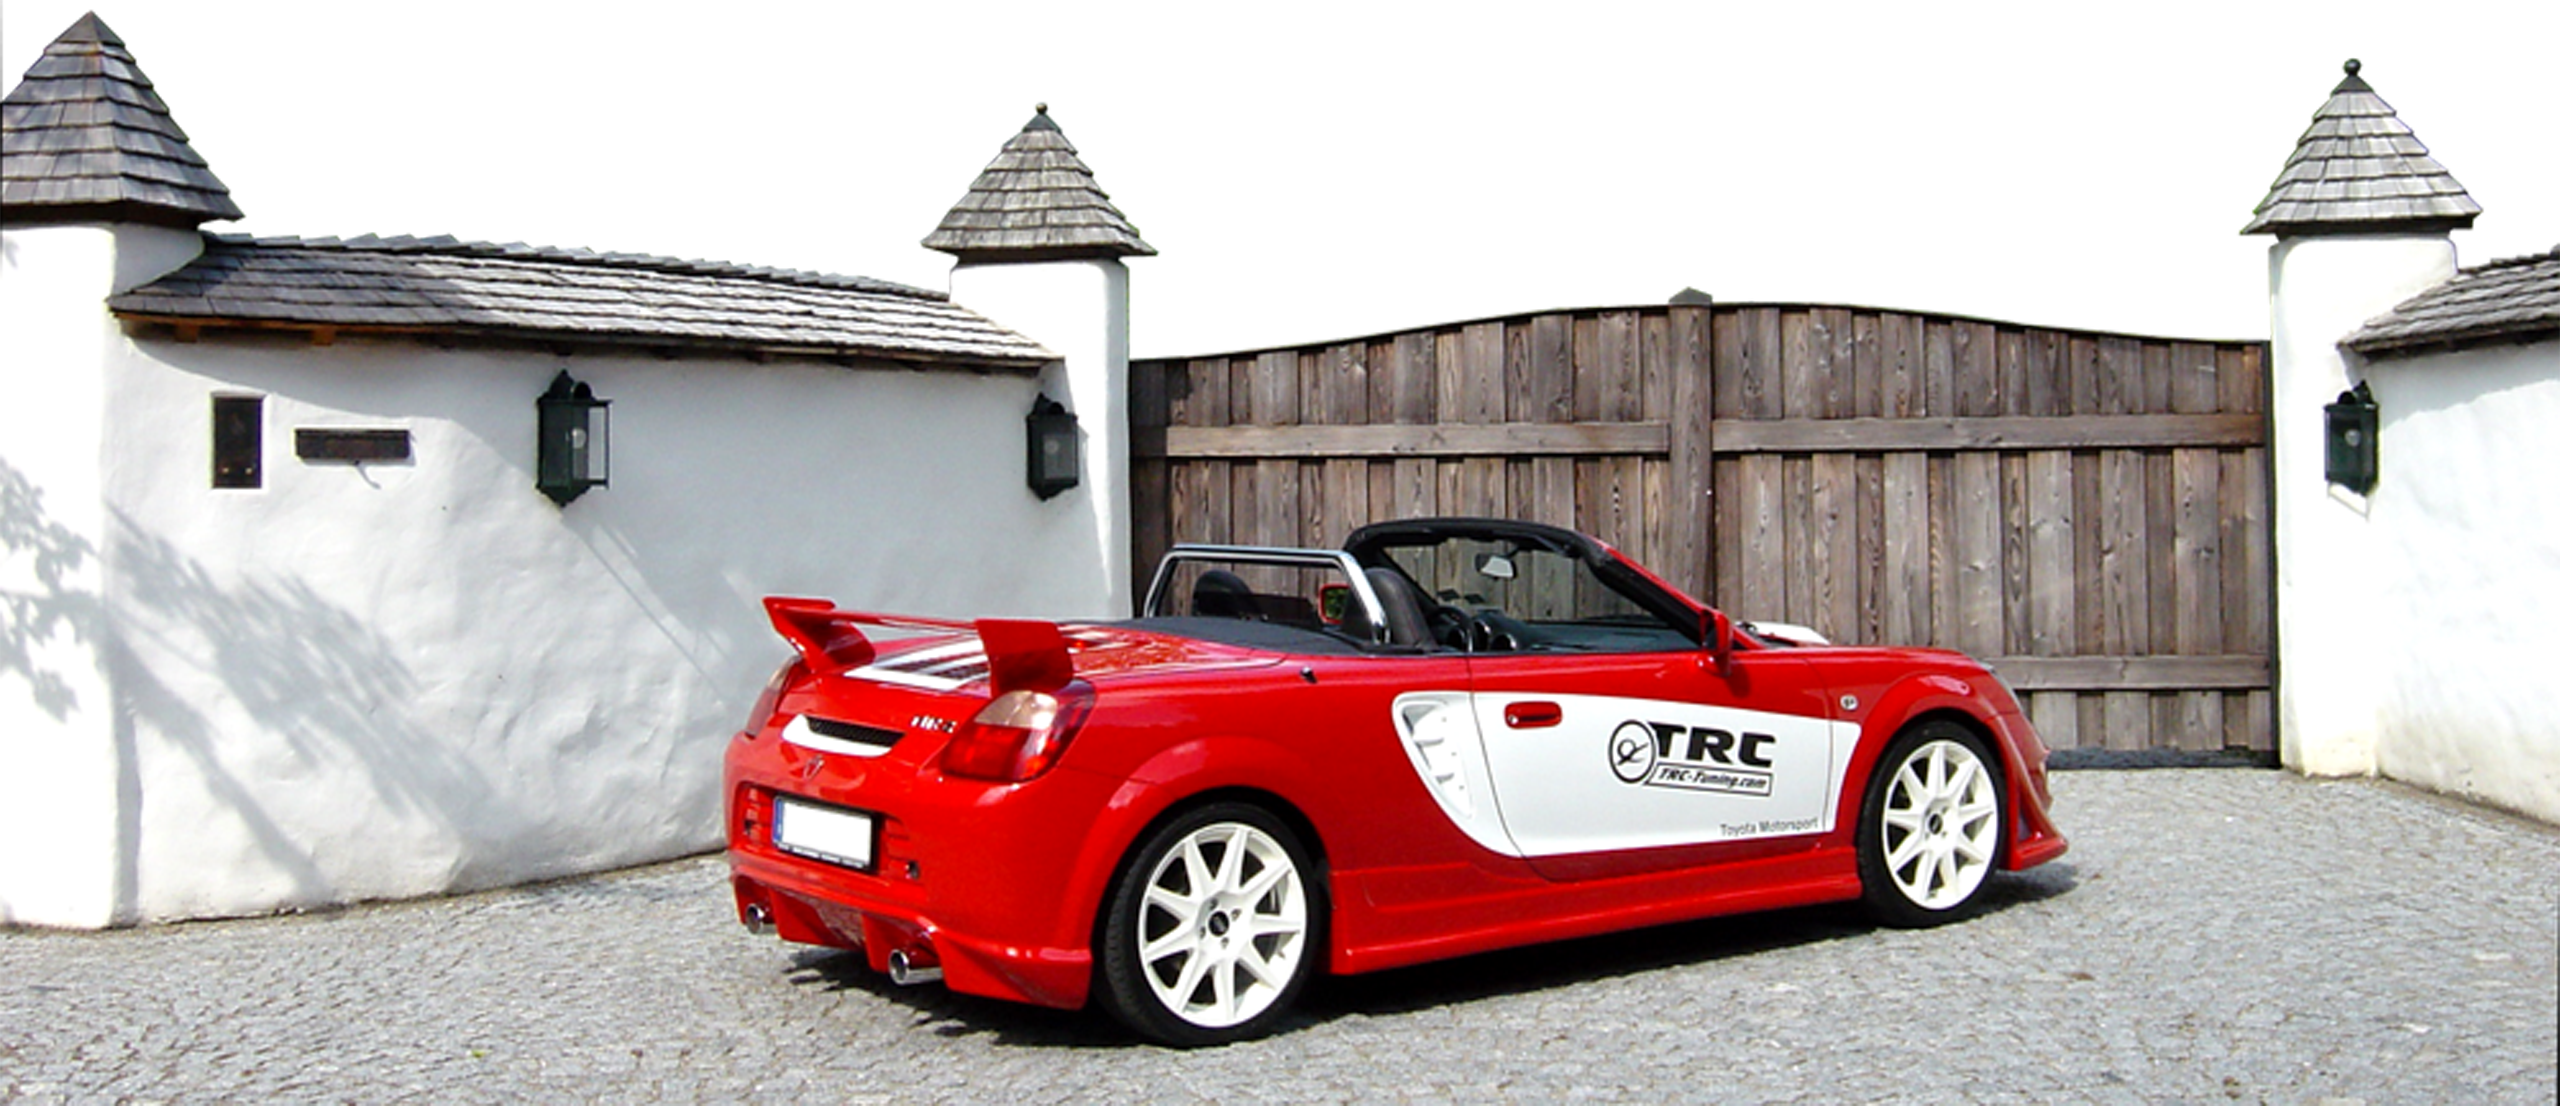 TRC-Tuning TOYOTA MR-2 W3 TTE Roadster